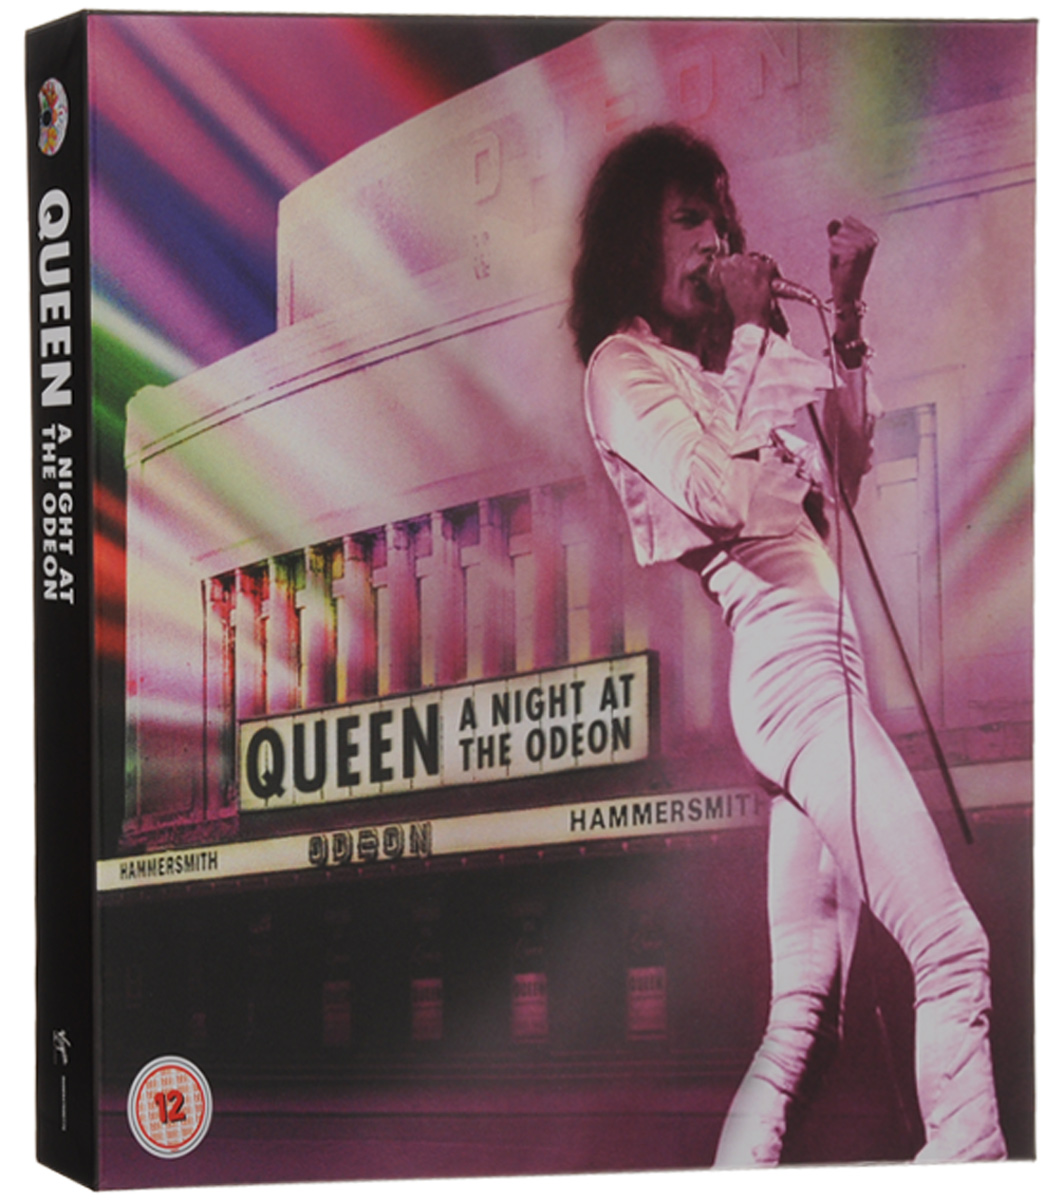 Queen Queen. A Night At The Odeon. Anniversary Limited Edition (CD + LP + DVD + Blu-ray) queen queen a night at the opera lp